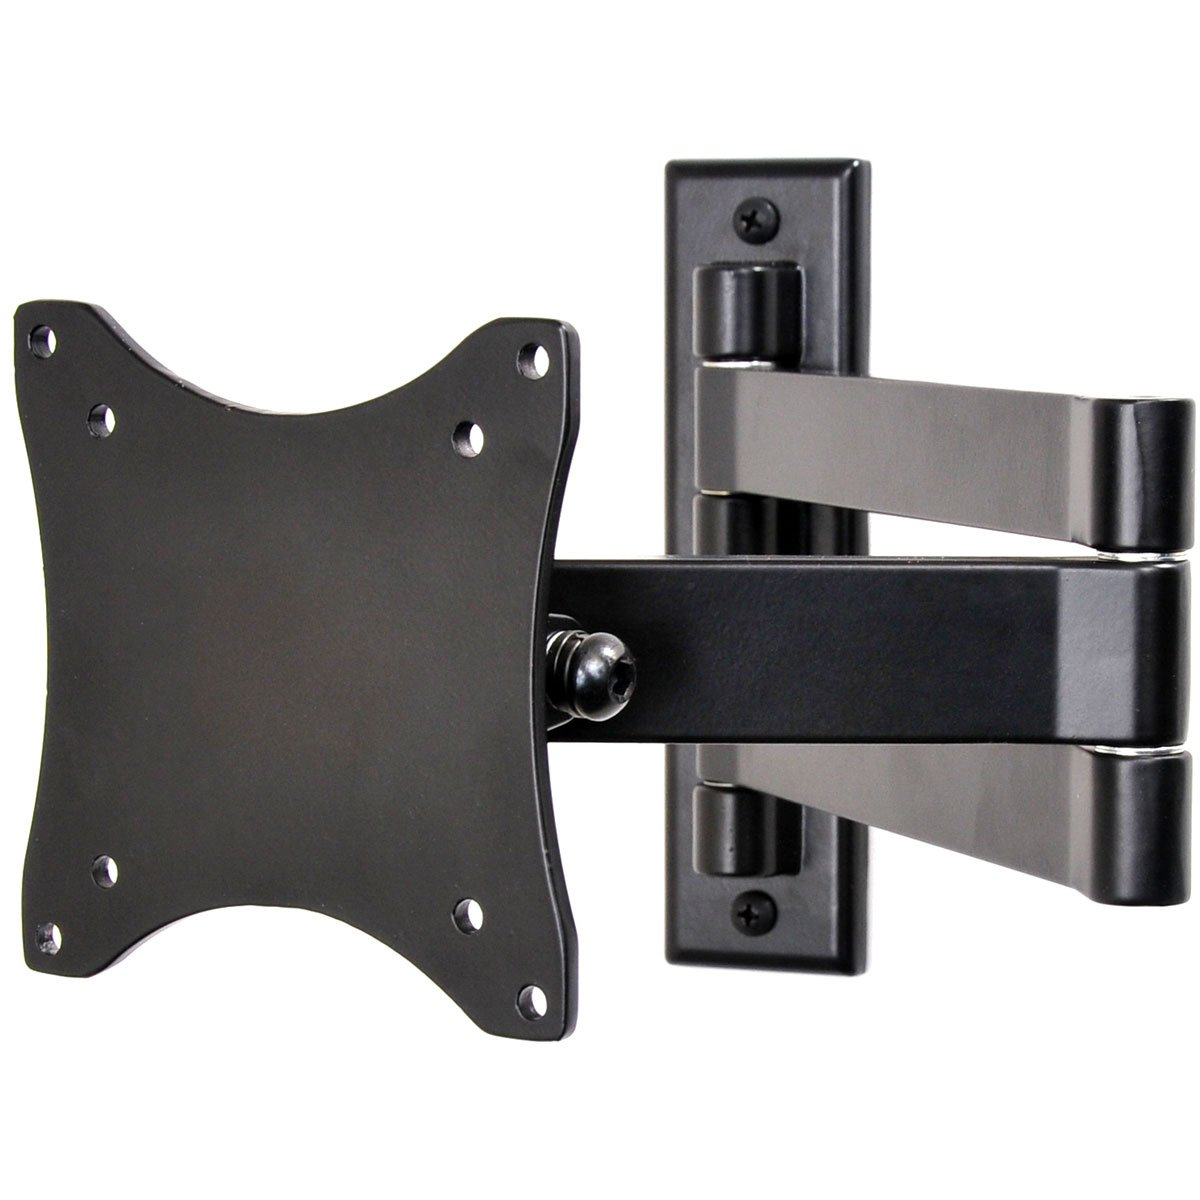 VideoSecu TV Wall Mount Articulating Arm Monitor Bracket for most 19''-32'', some up to 47'' LCD LED Plasma Flat Panel Screen TV with VESA 100/75mm ML10B 1E9